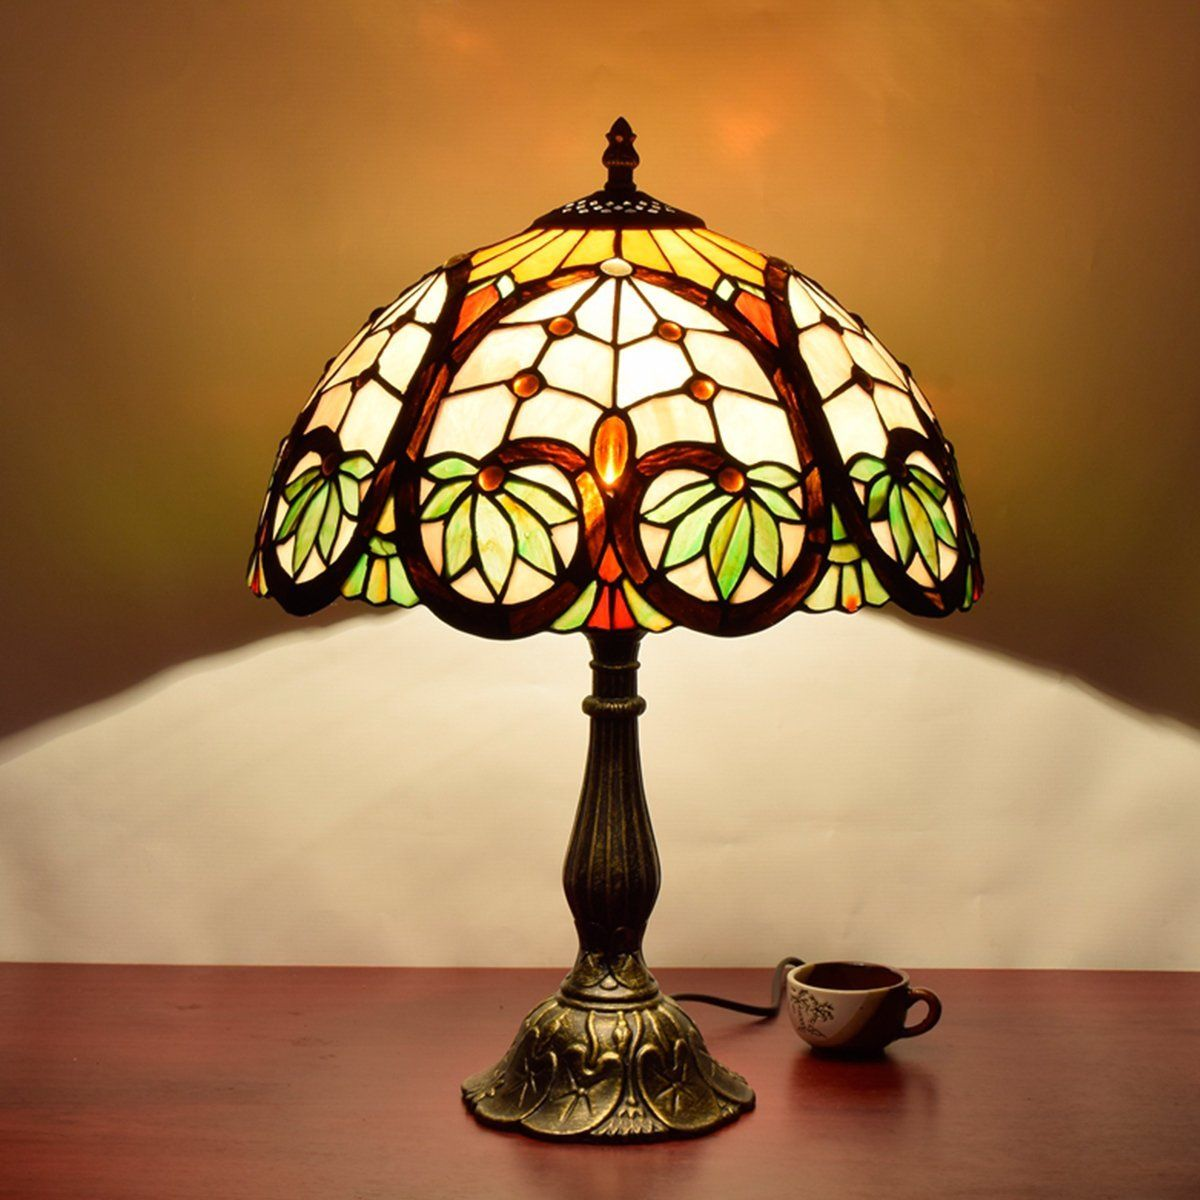 Tiffany Style Table Lamp Mklot Ecopower Baroque Lighting 12 Inch